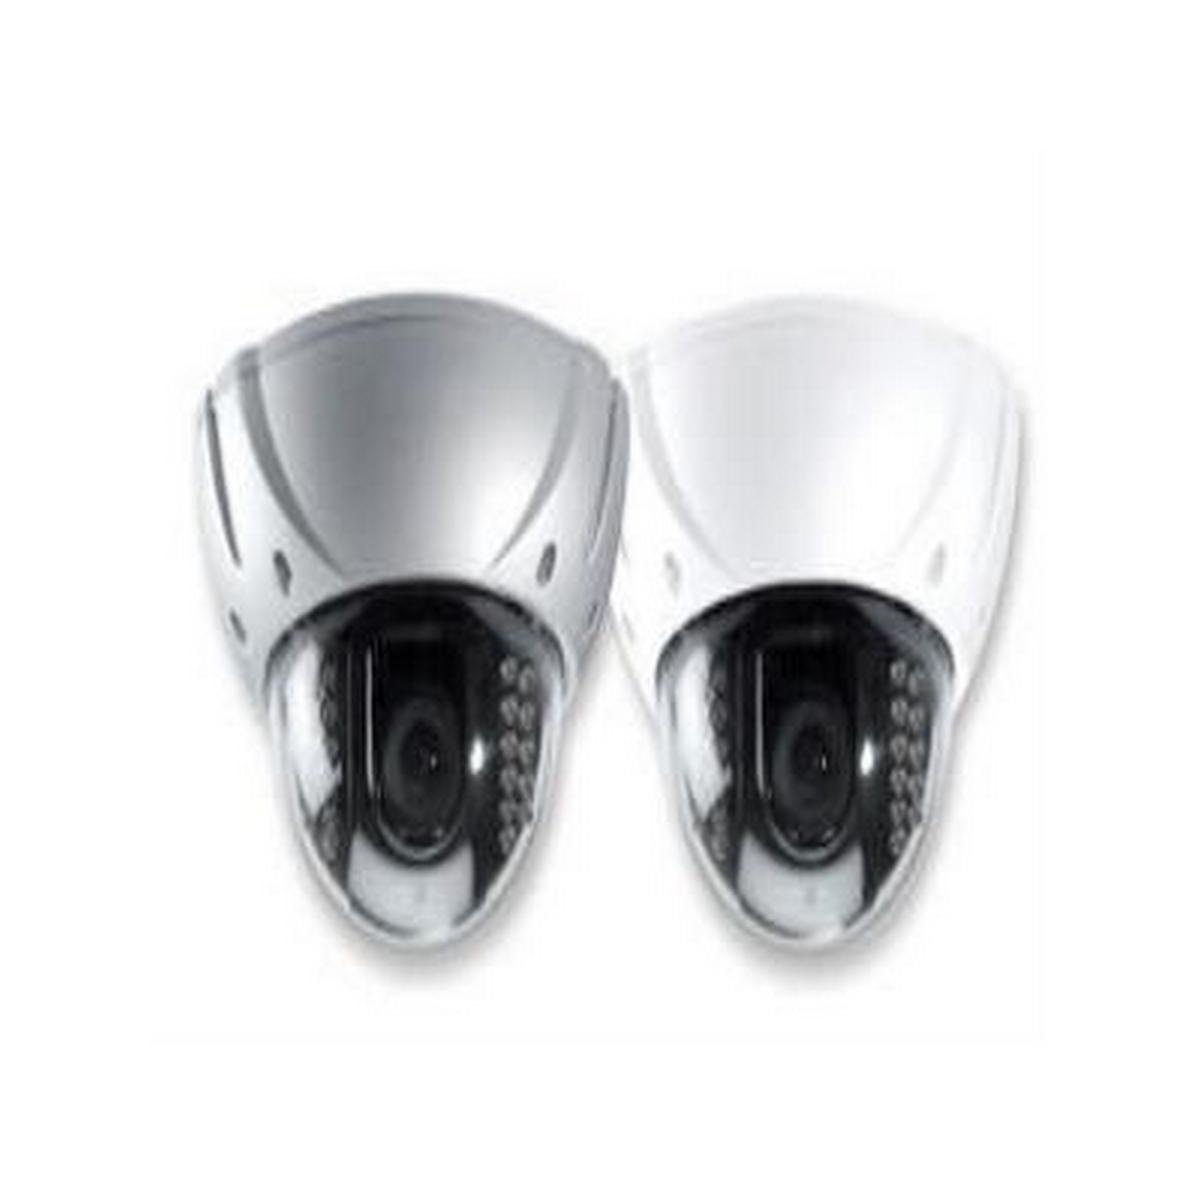 Speco WDR650S Wide Dynamic Range Dome Camera Tamperproof & Weatherproof VF Lens  IR LED's Silver